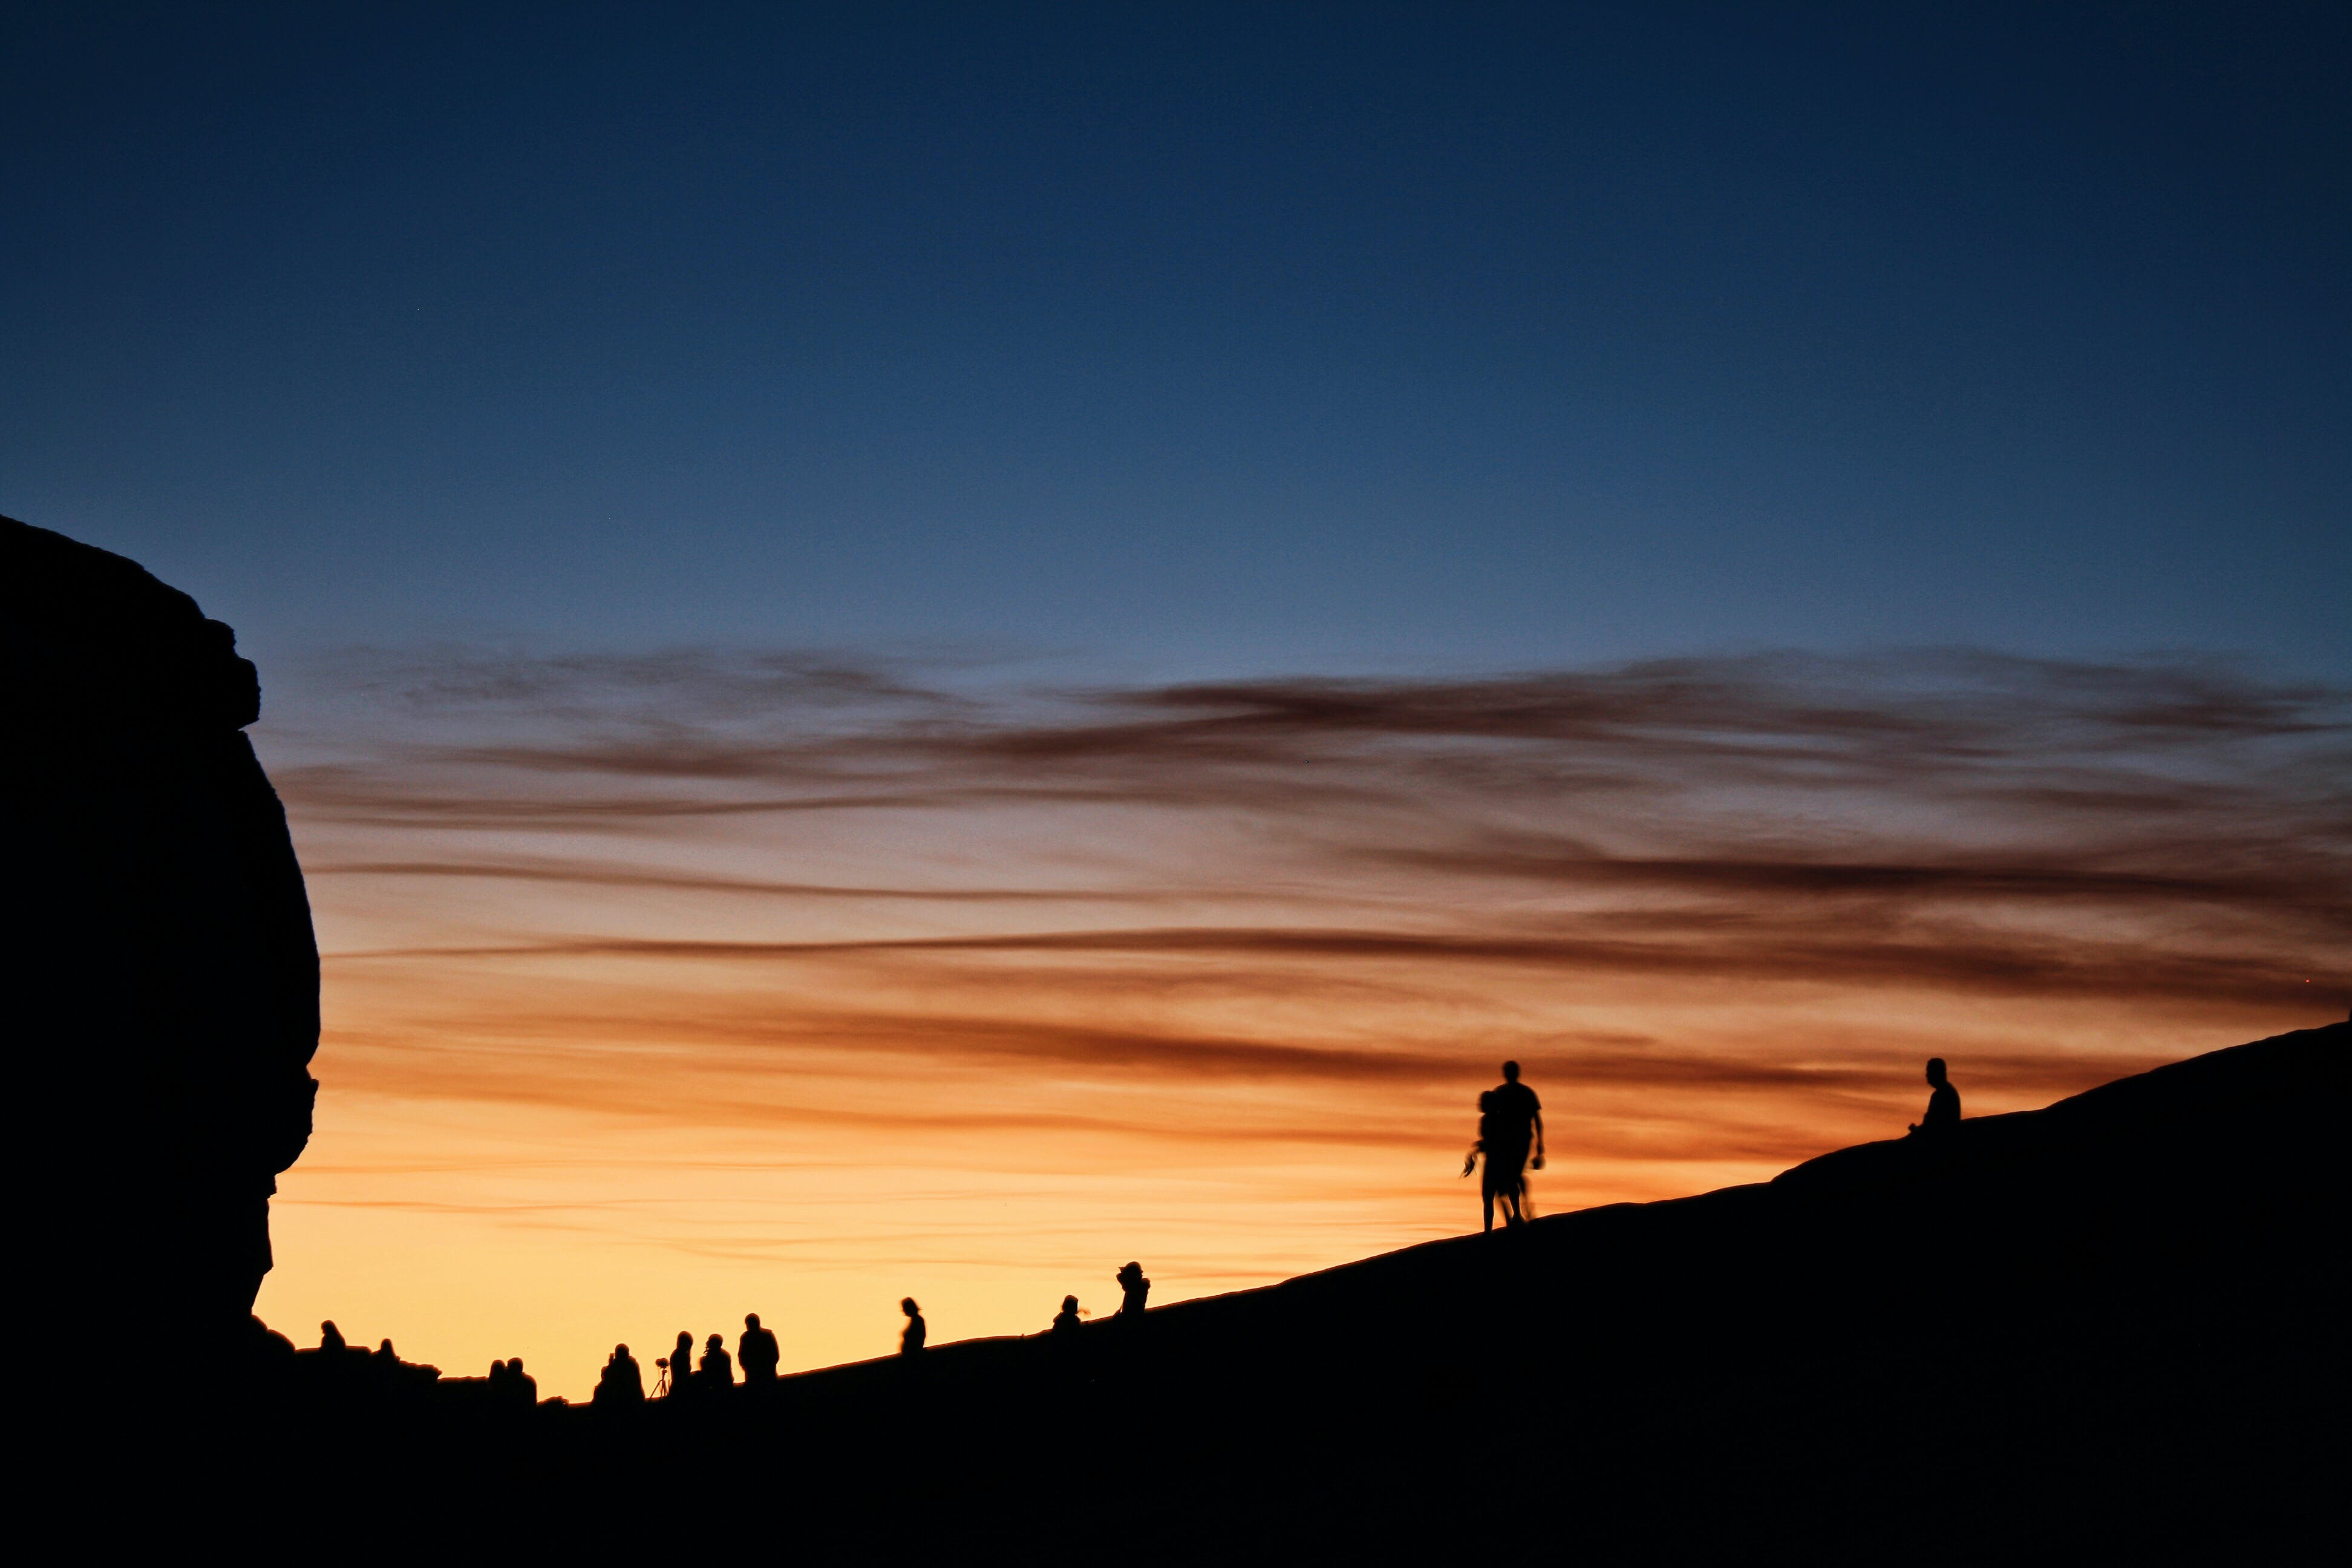 Silhouette of People Walking on Mountain during Golden Hour